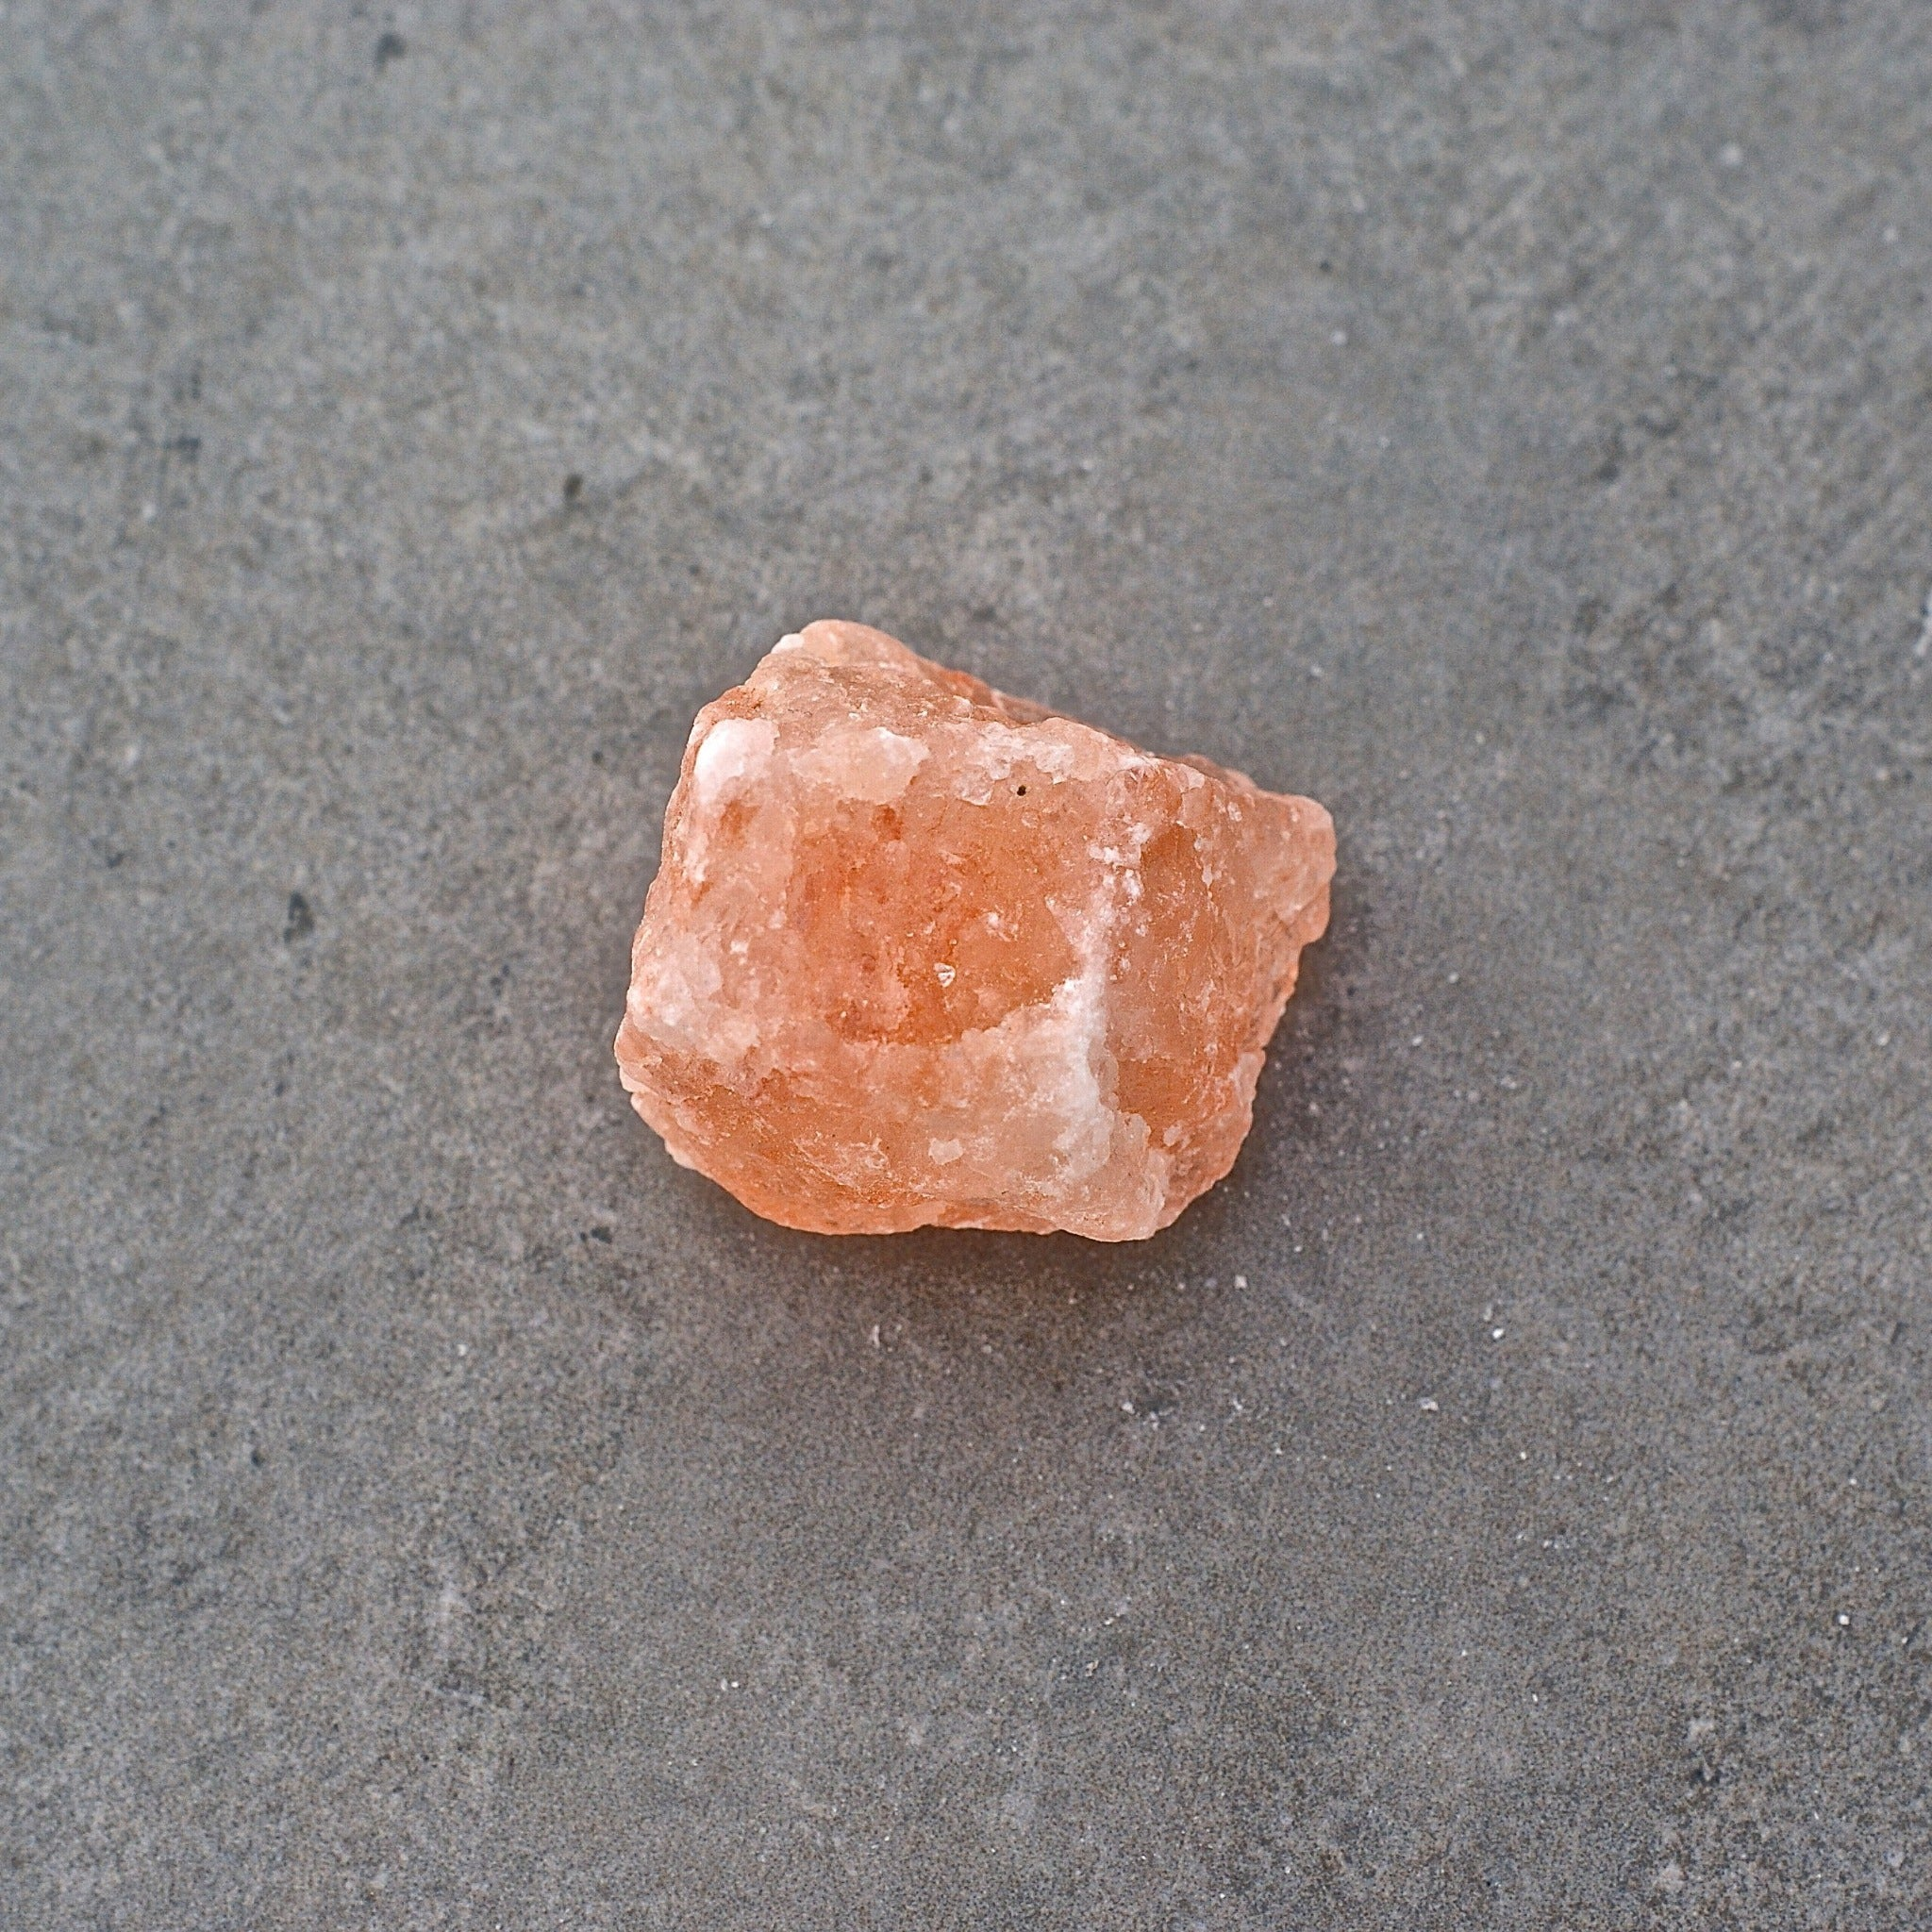 002 THE ORIGINAL REFILL - HIMALAYAN SALT ROCKS